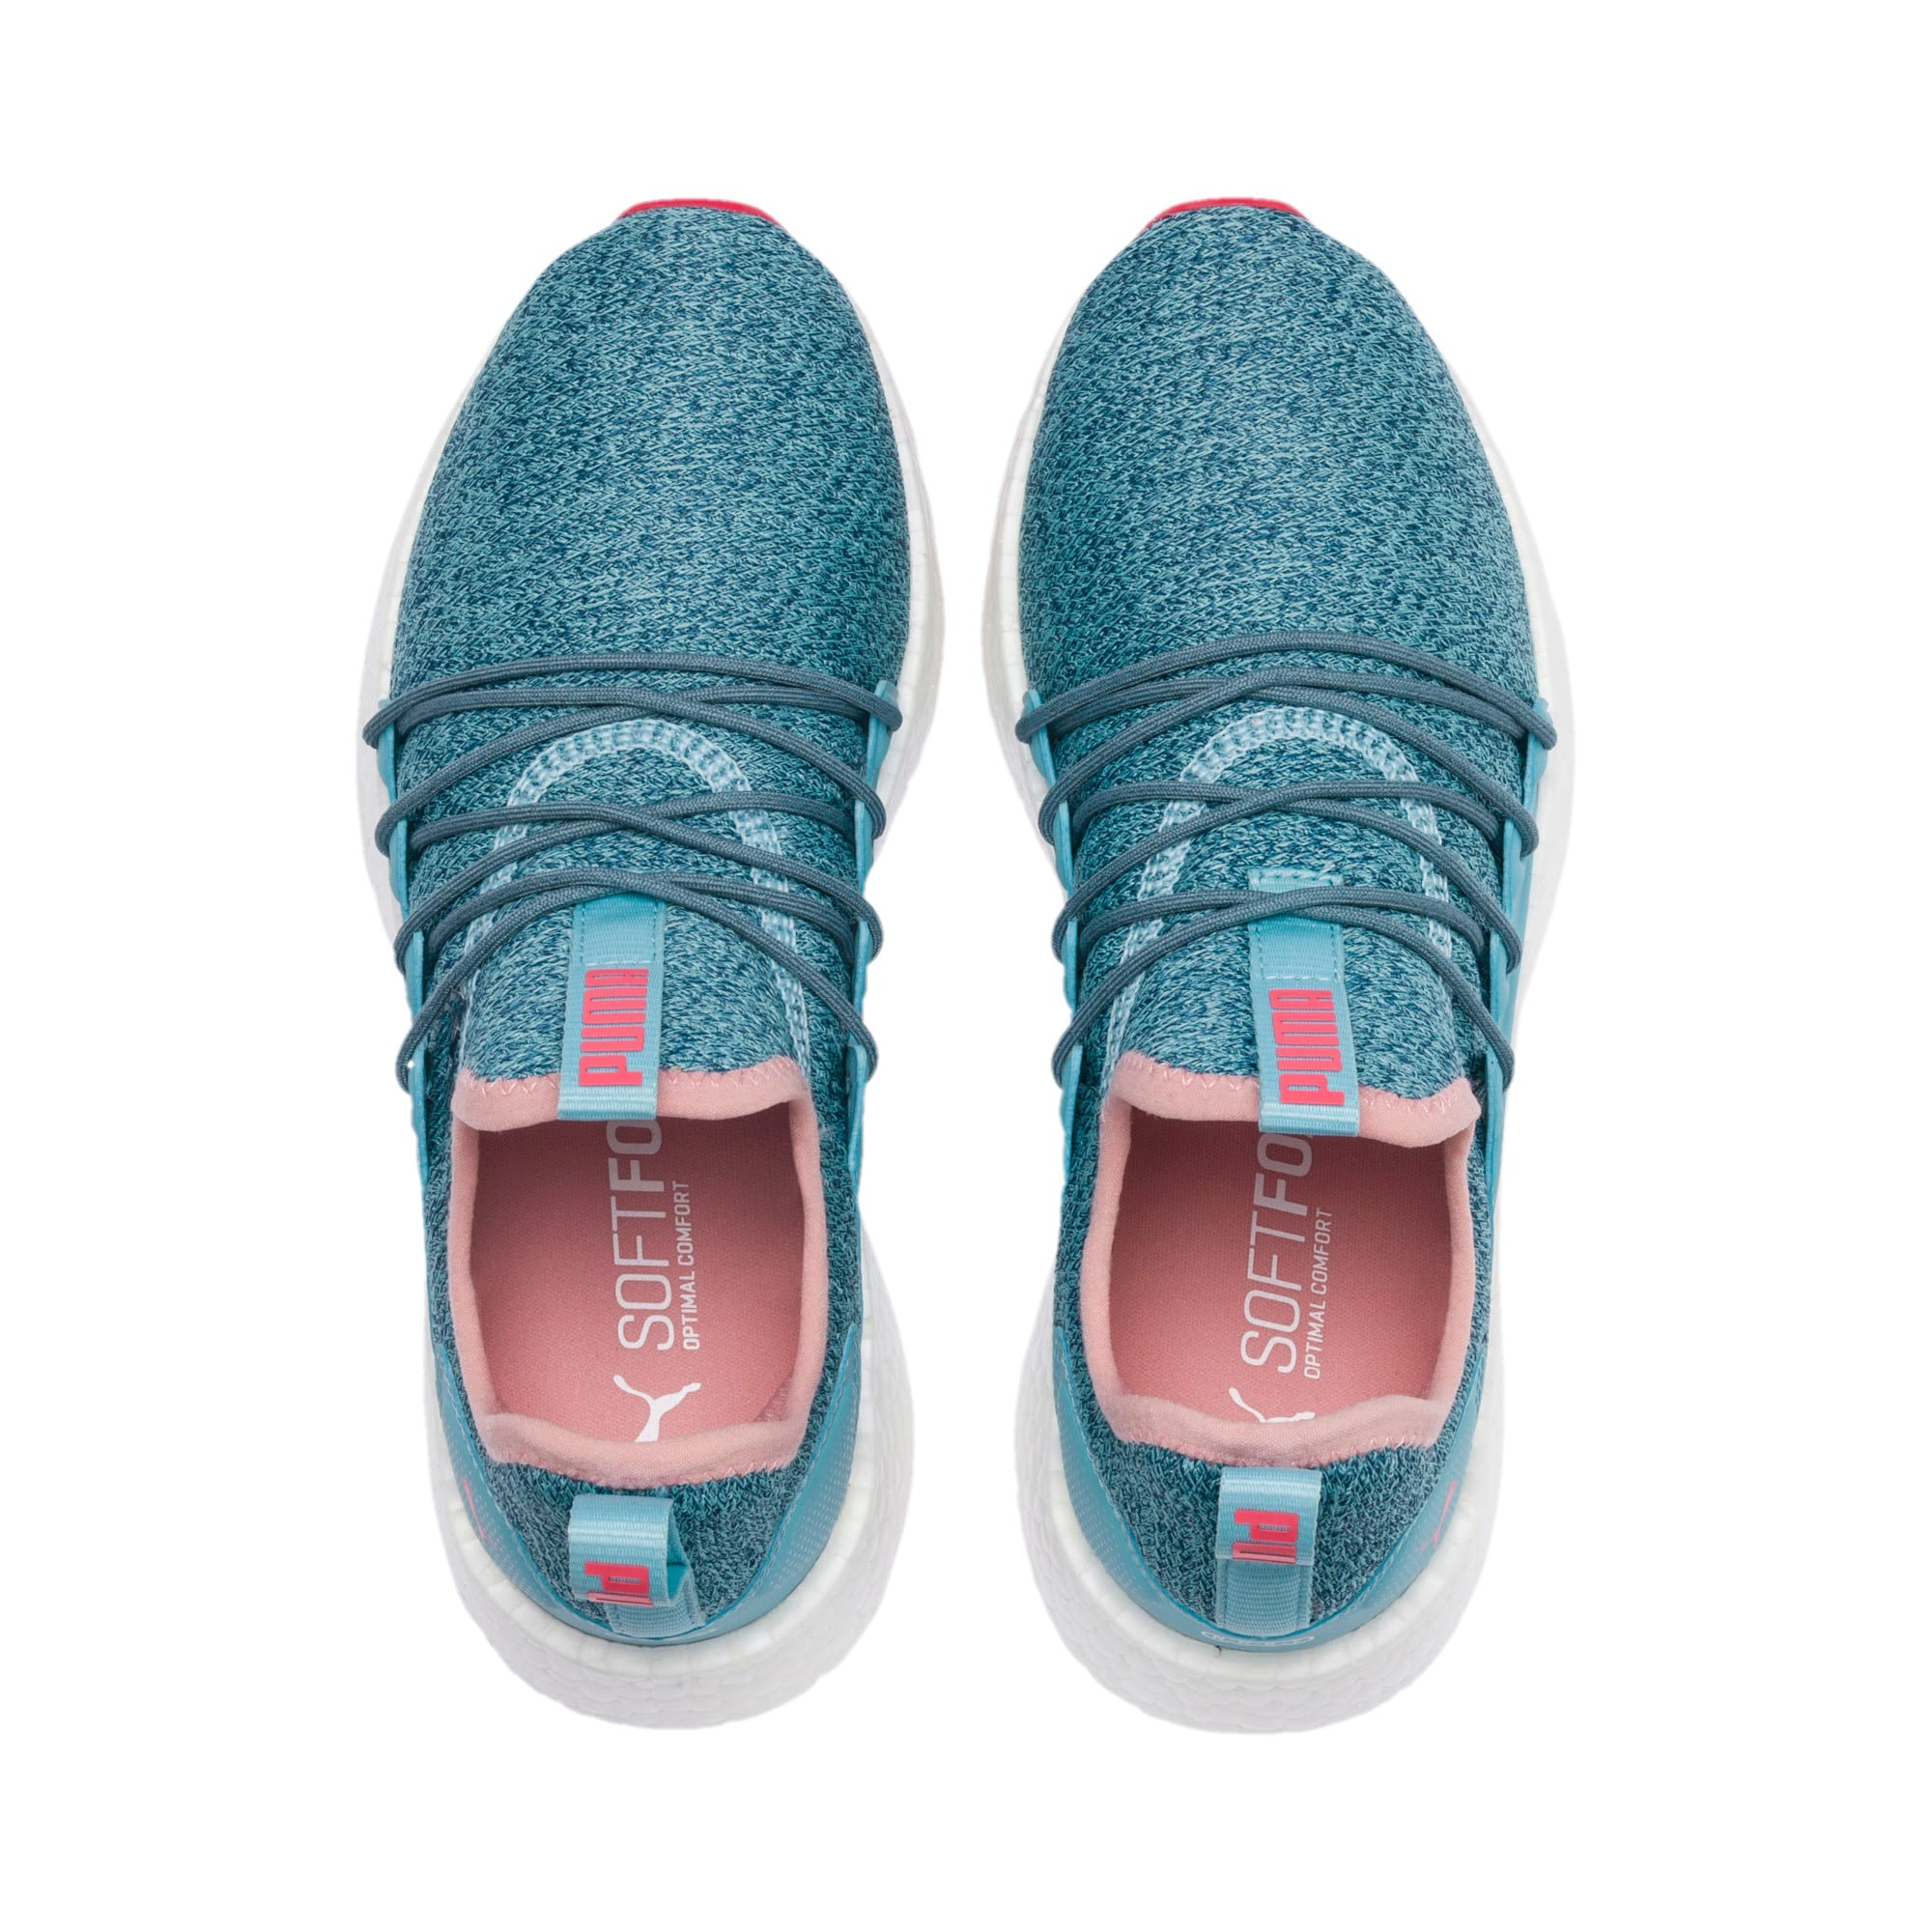 Thumbnail 6 of NRGY Neko Knit Running Shoes JR, M Blue-Bluestone-C Coral-Wht, medium